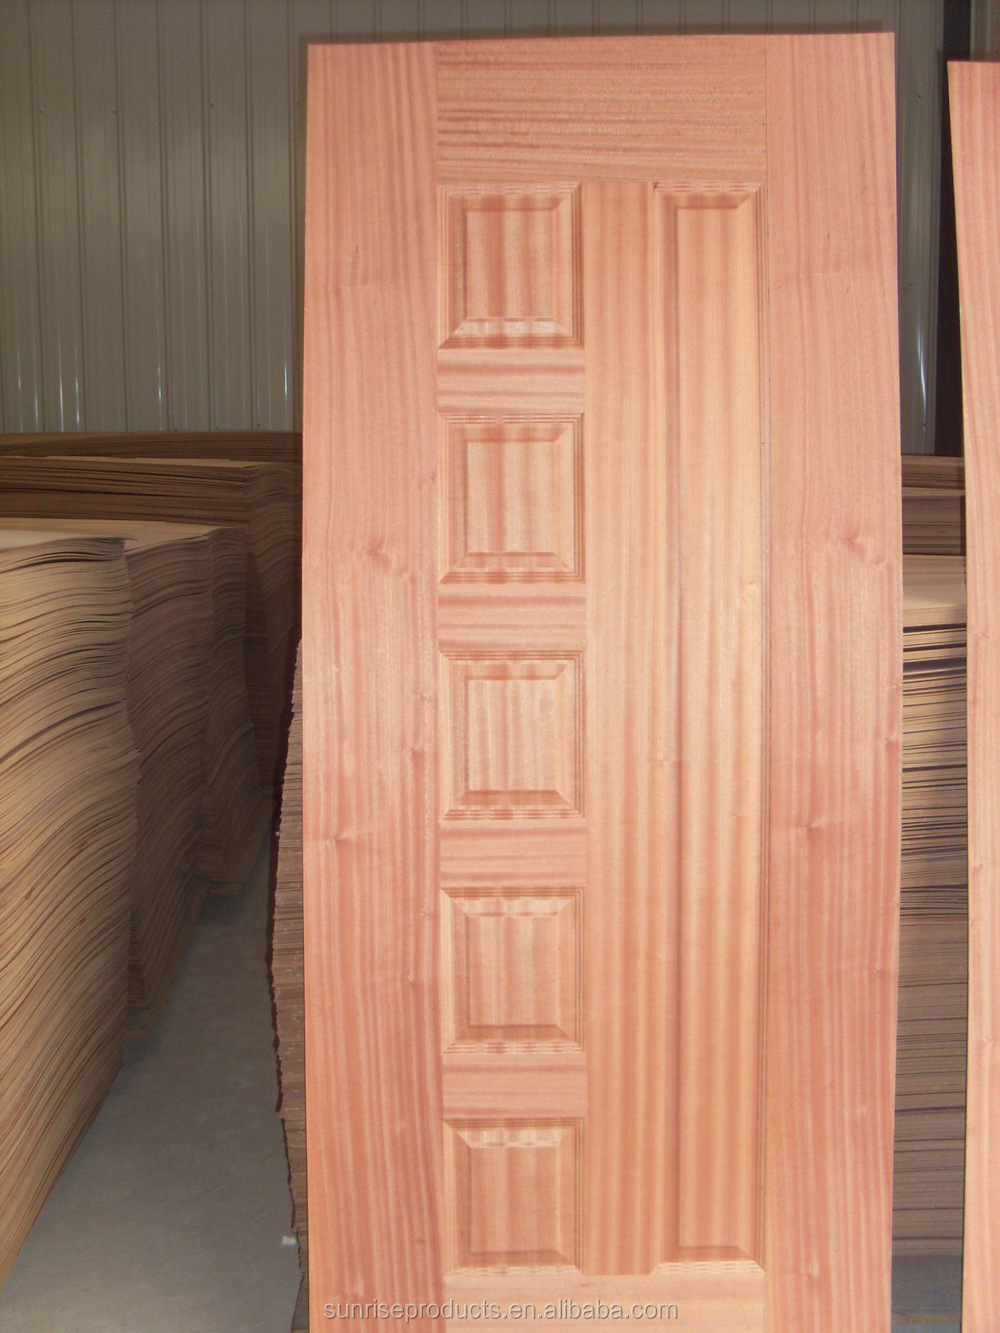 Door skin plywood 2135 buy door size plywood plywood for Plywood door design